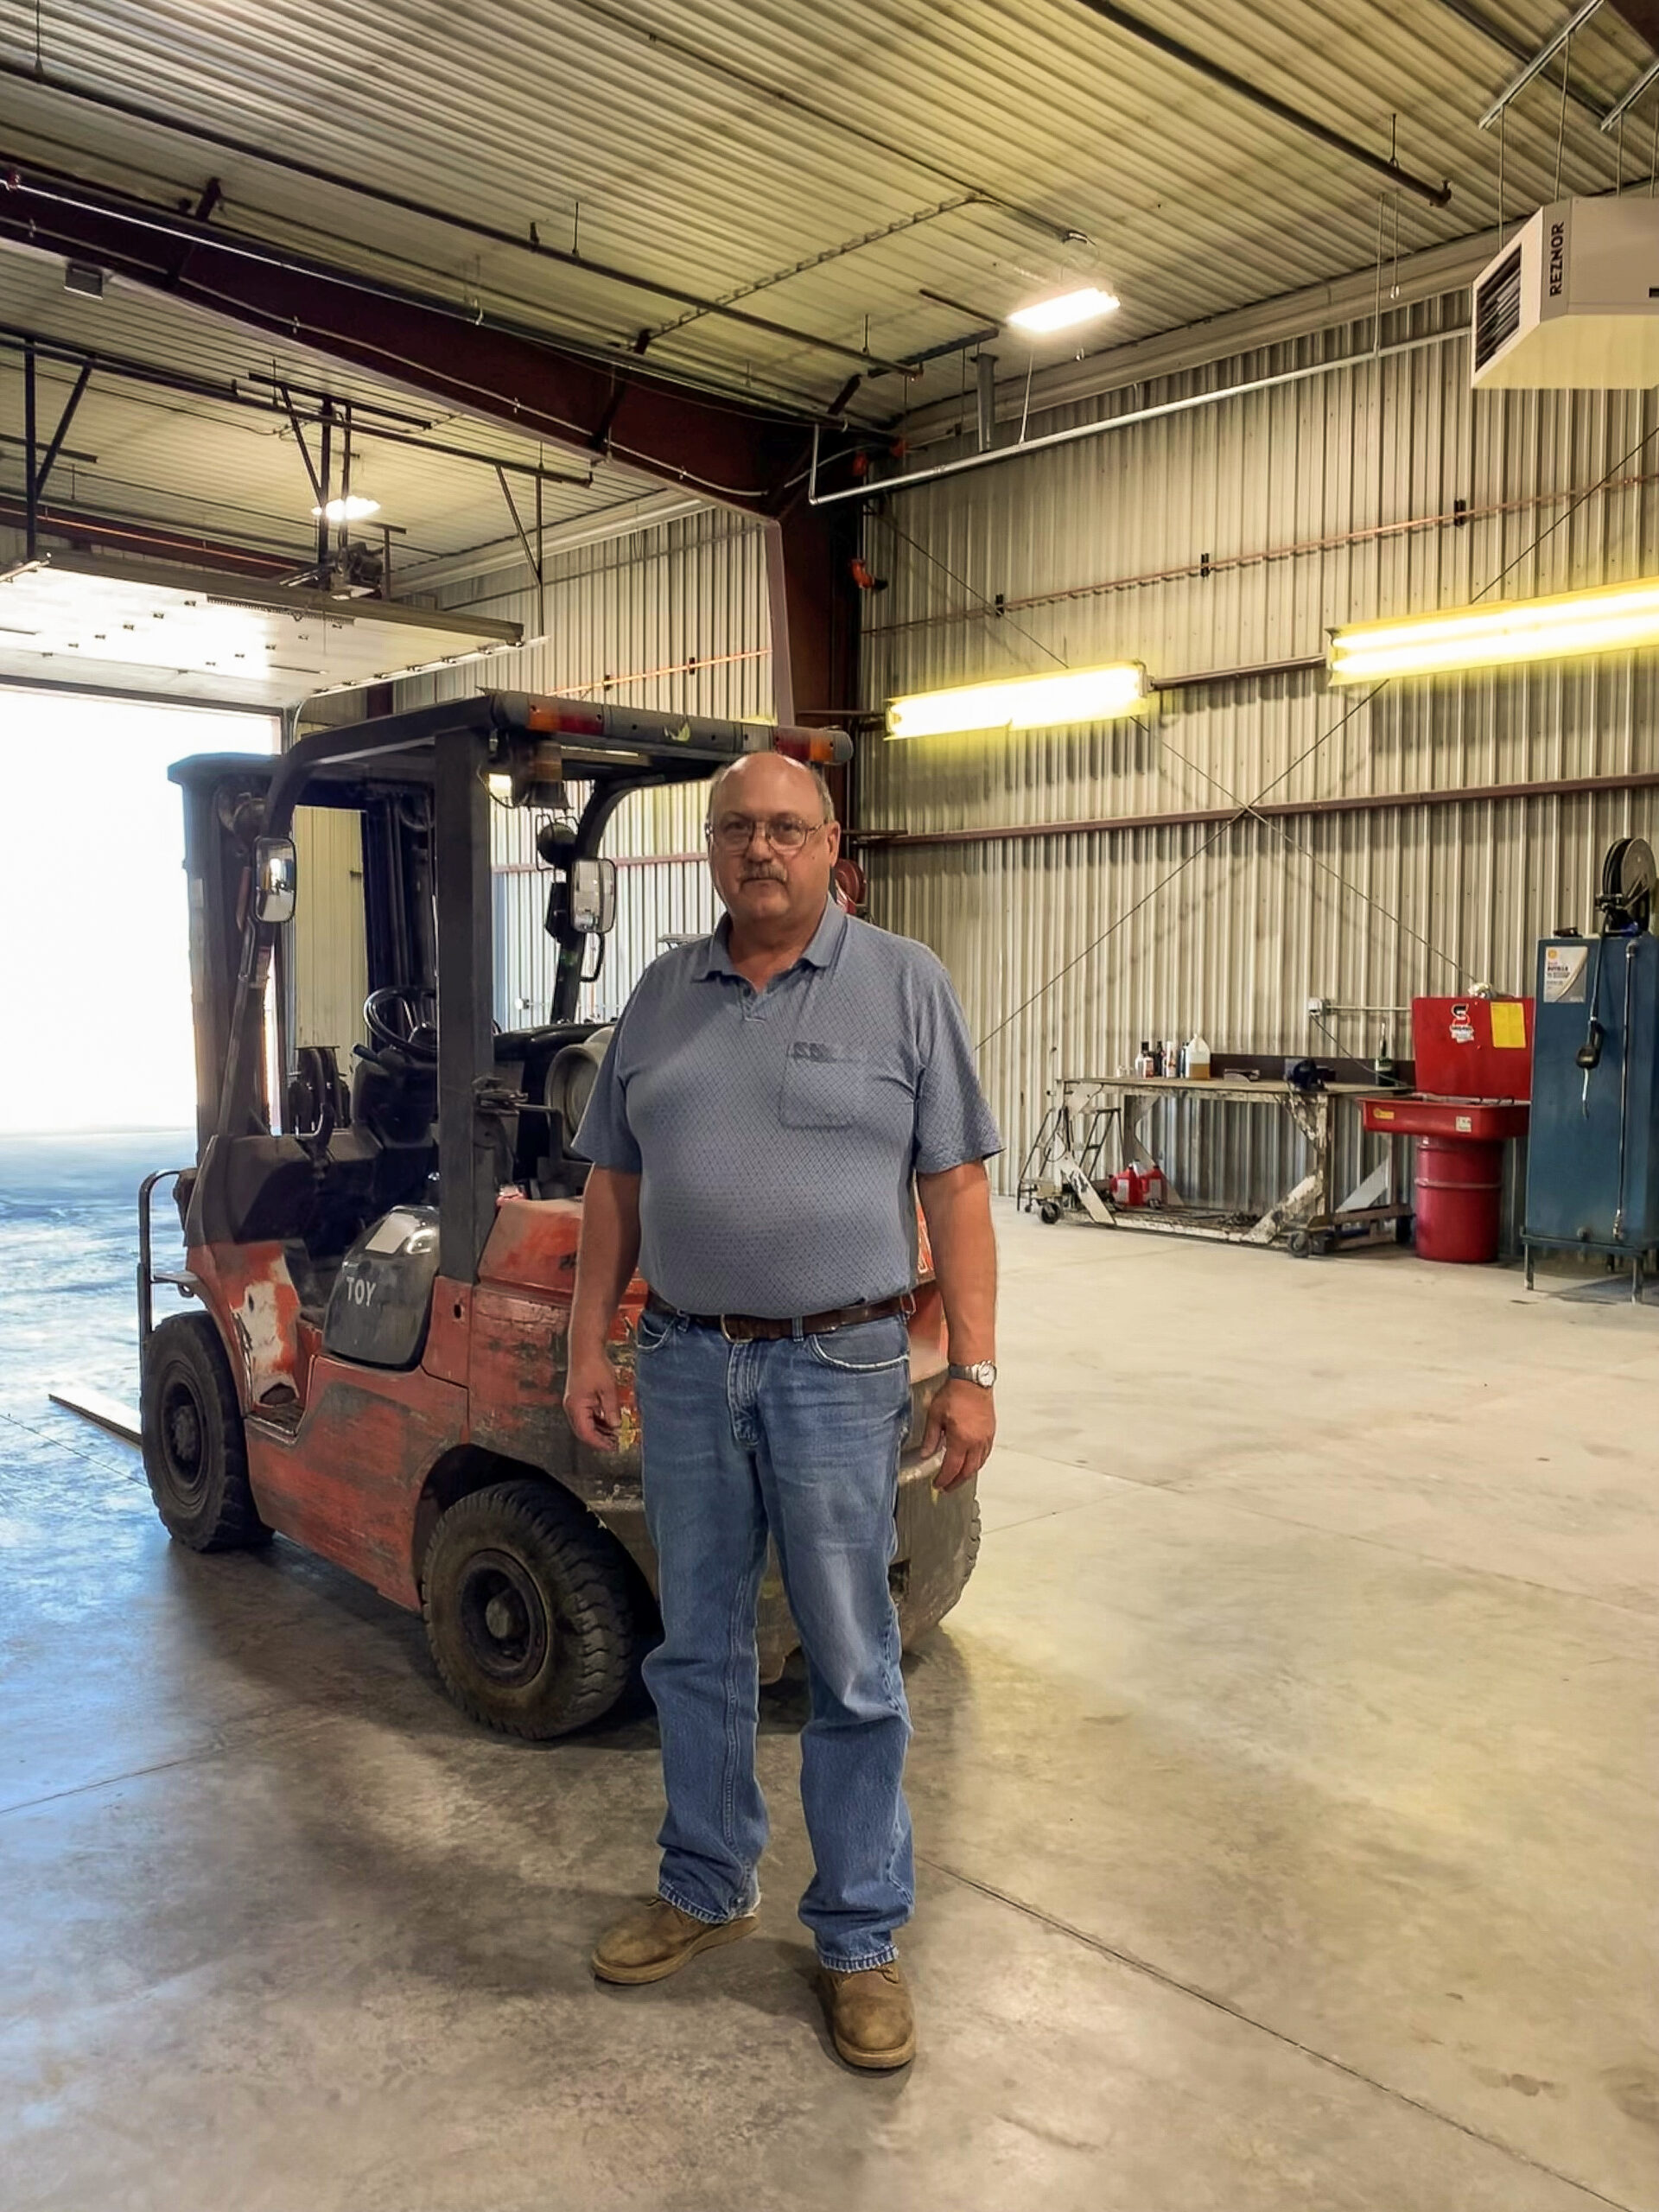 Shop Manager Jeff in front of Forklift